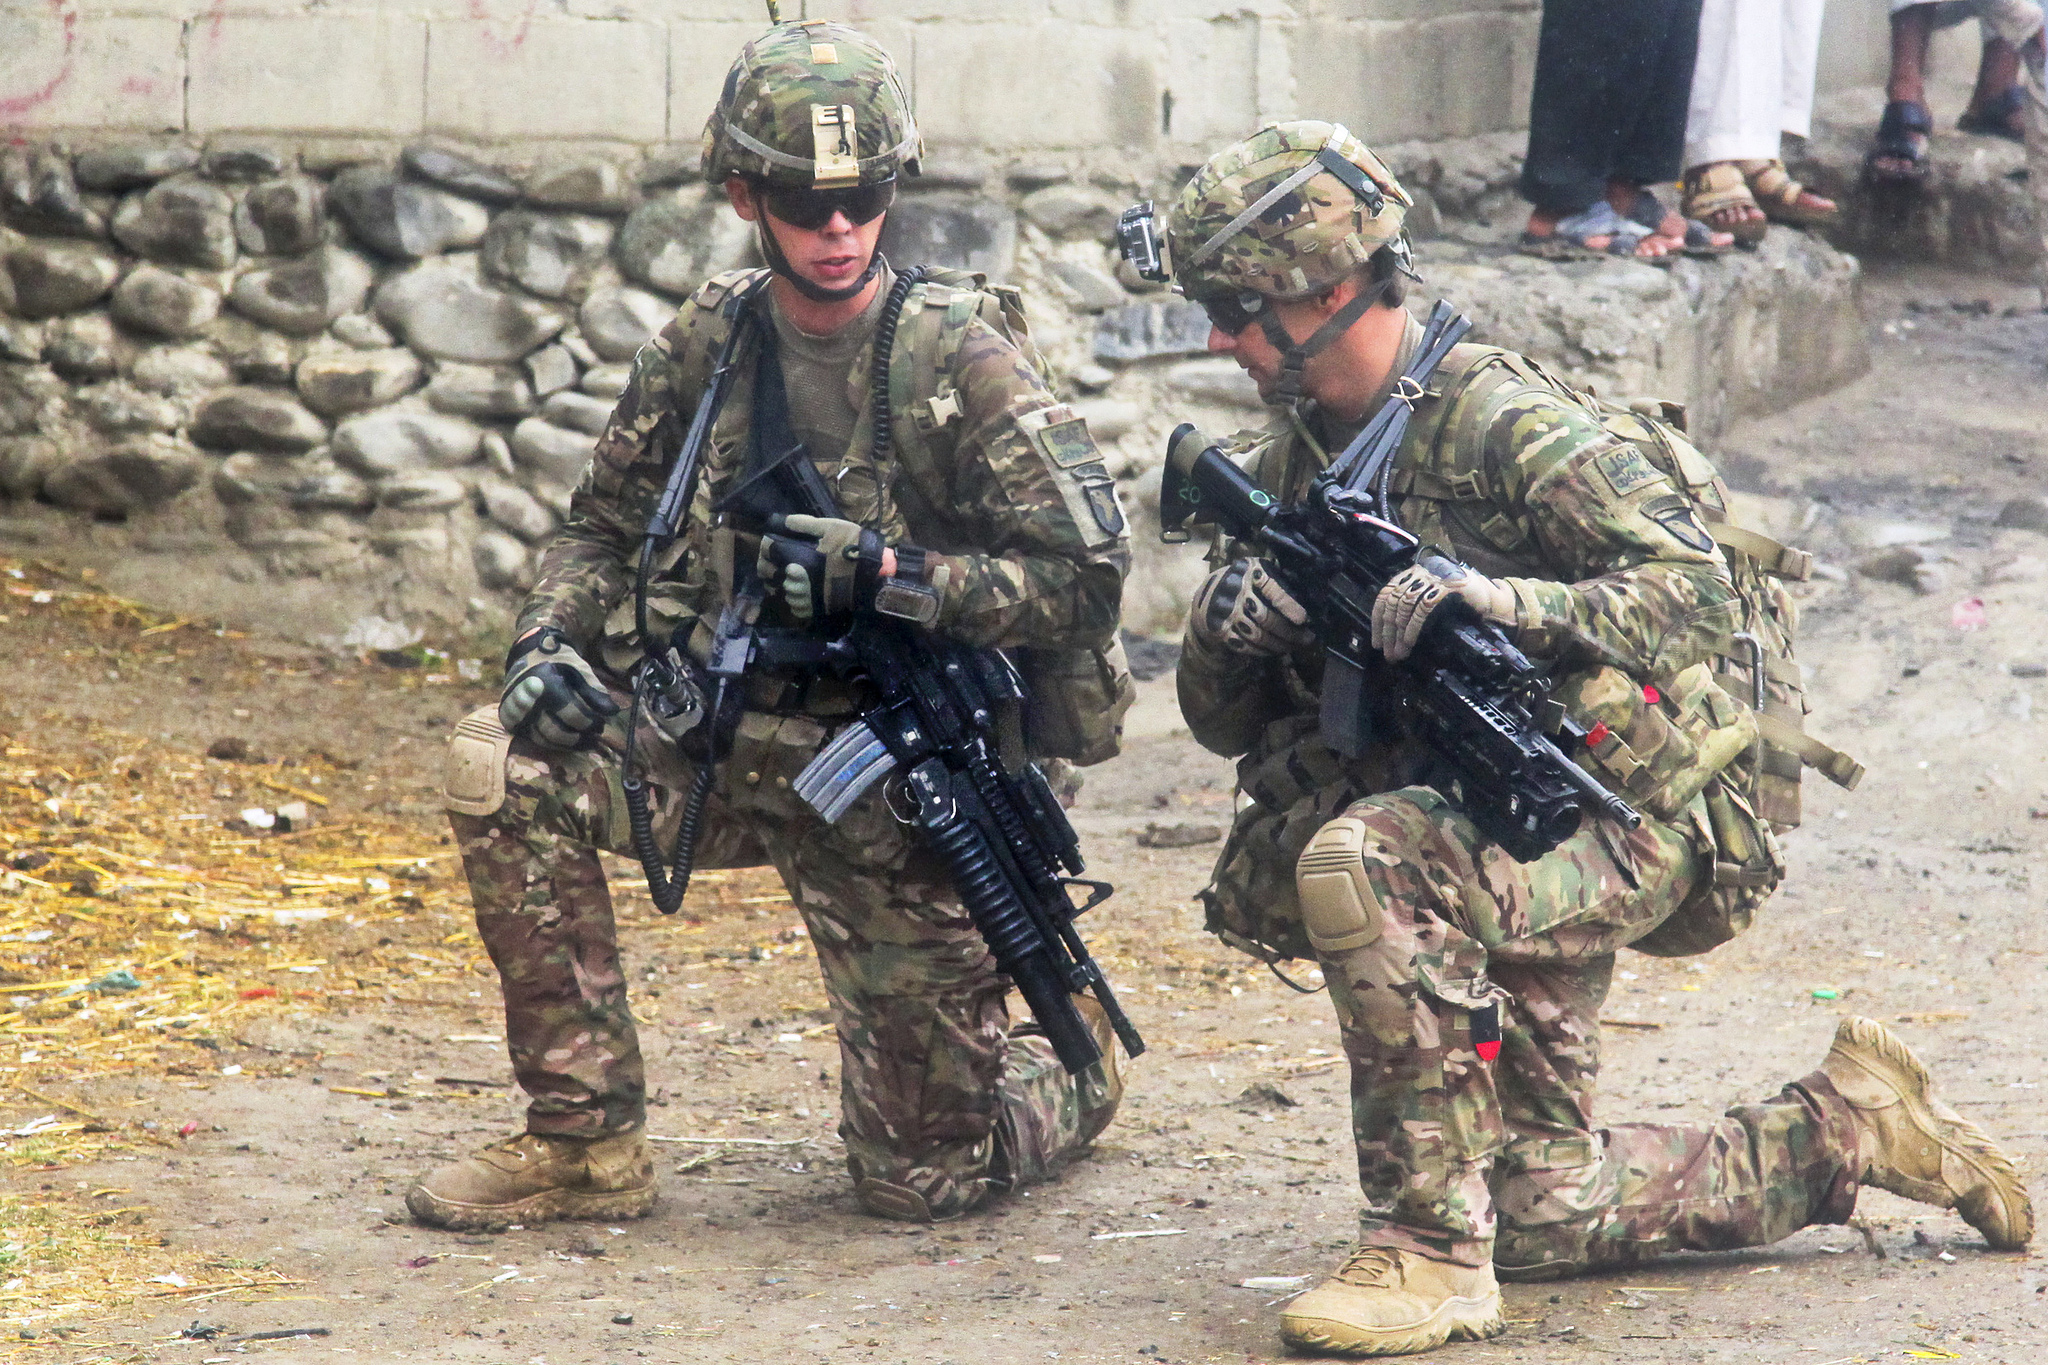 U.S. Army Soldiers with 2nd Battalion, 506th Infantry Regiment, 4th Brigade Combat Team, 101st Airborne Division, provide security in the village of Kajir Kheyl in Khowst province, Afghanistan, June 12, 2013. U.S. Army photo by Spc. Robert Porter